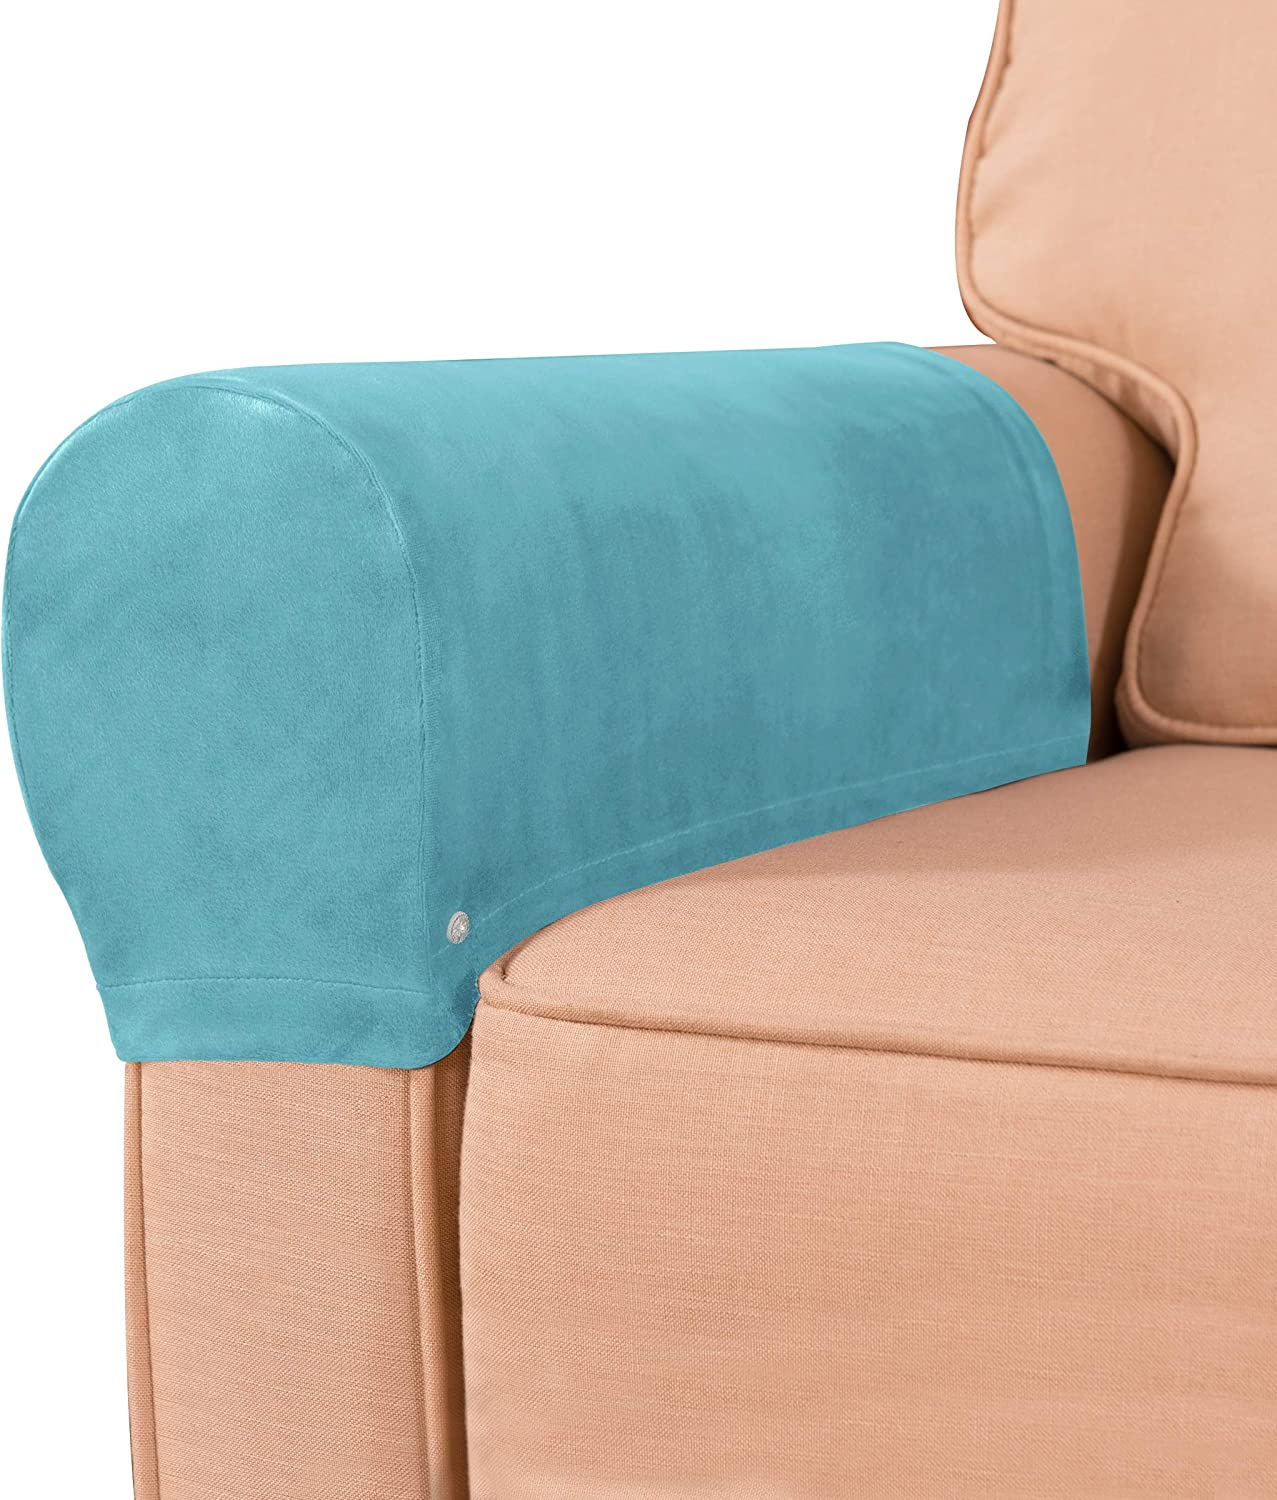 subrtex Velvet Armchair Covers Spandex Stretch Armrest Covers Couch Furniture Protector Armchair Slipcovers for Sofa with Free Twist Pins(Blue,2pcs)